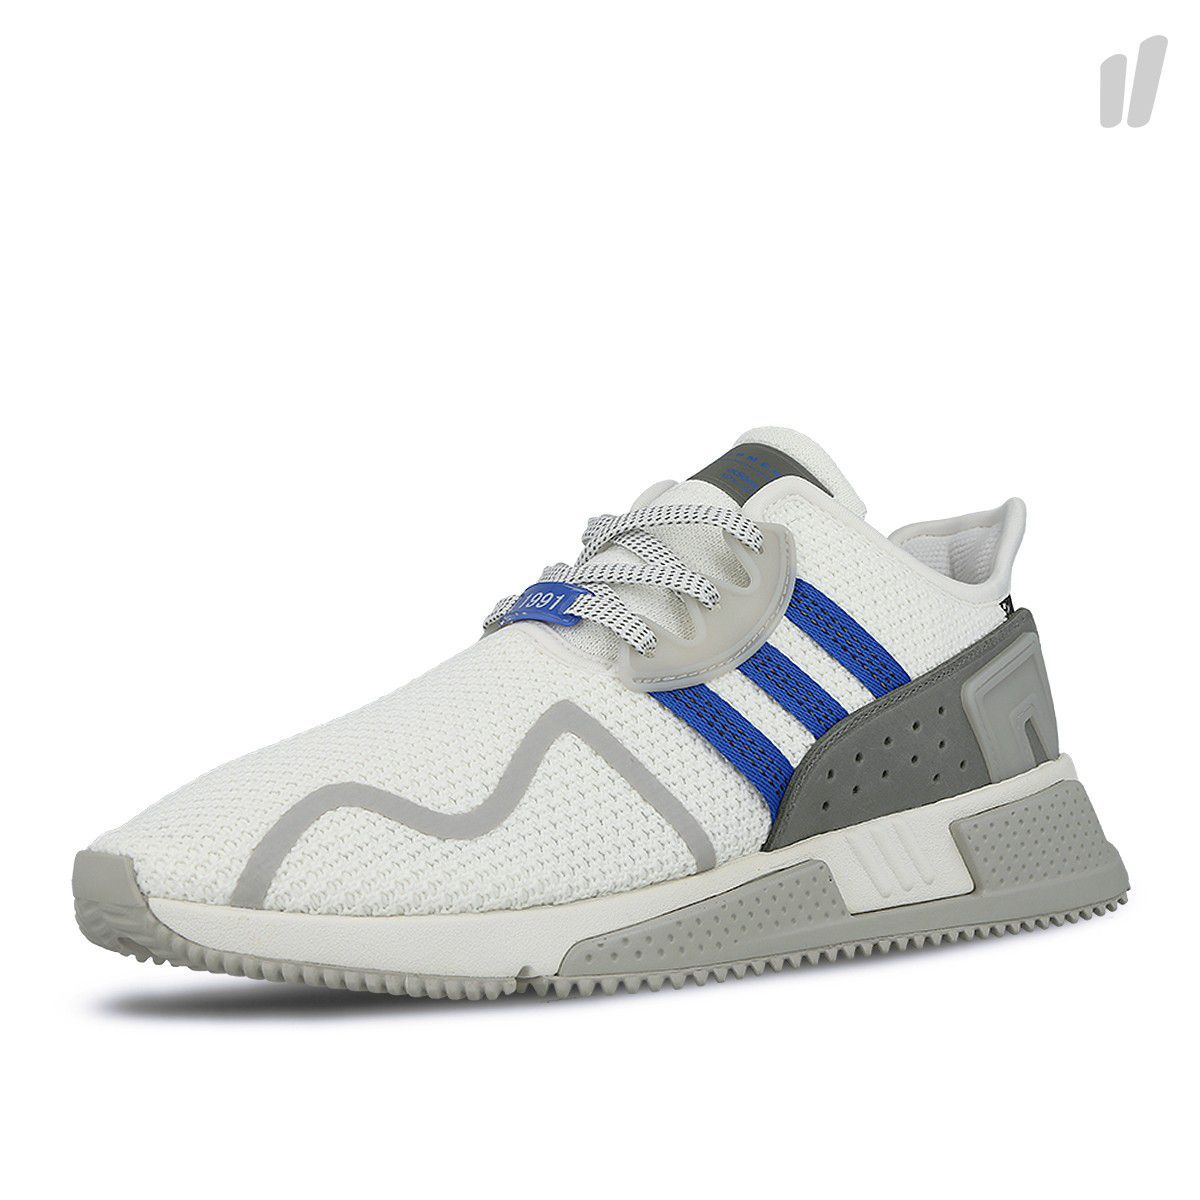 check out b2d34 a2b9f Adidas ORIGINALS EQT CUSHION ADV Sneakers White Casual Shoes - Buy Adidas  ORIGINALS EQT CUSHION ADV Sneakers White Casual Shoes Online at Best Prices  in ...